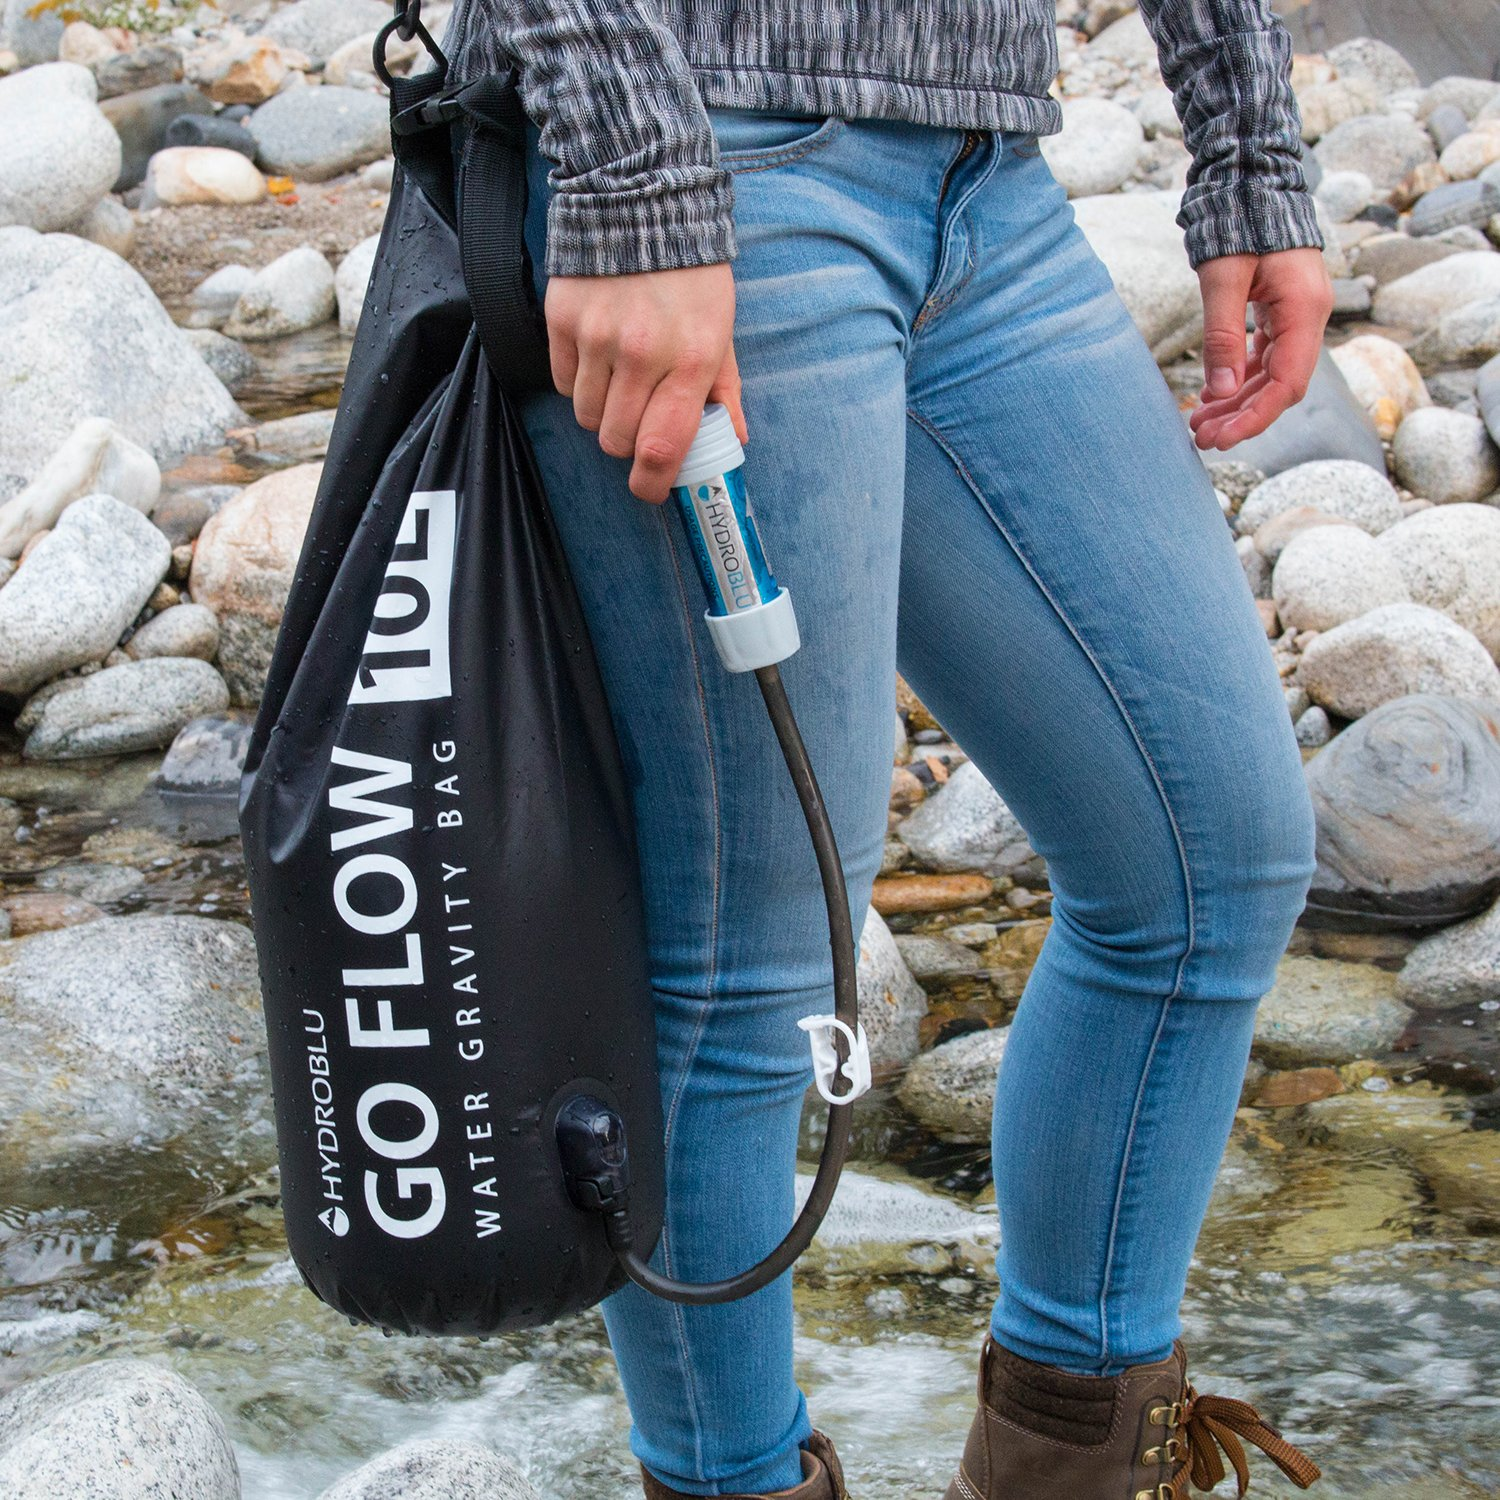 HydroBlu Go Flow Gravity Water Filter Bag with Versa Flow Water Filter Kit by HydroBlu (Image #6)